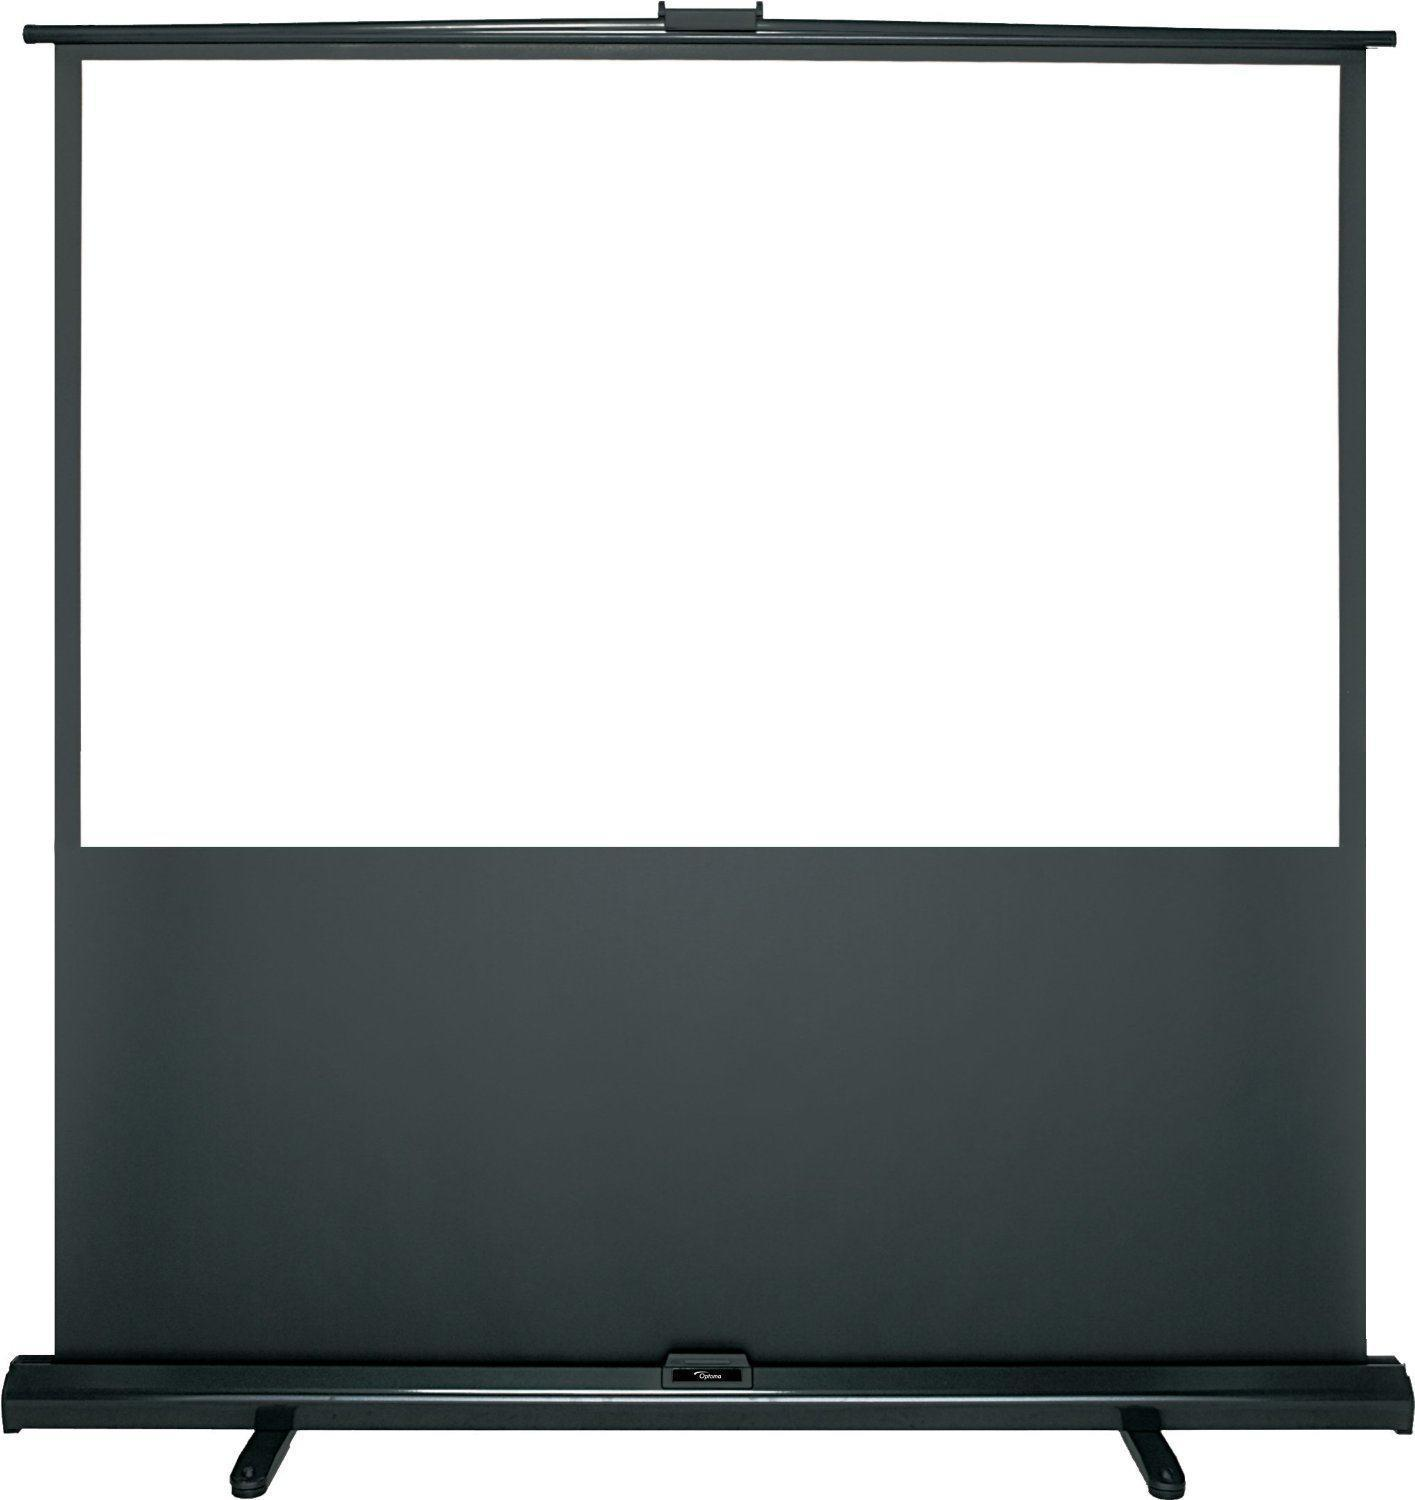 "Optoma DP-1095MWL 95"" Portable 16:10 Screen"